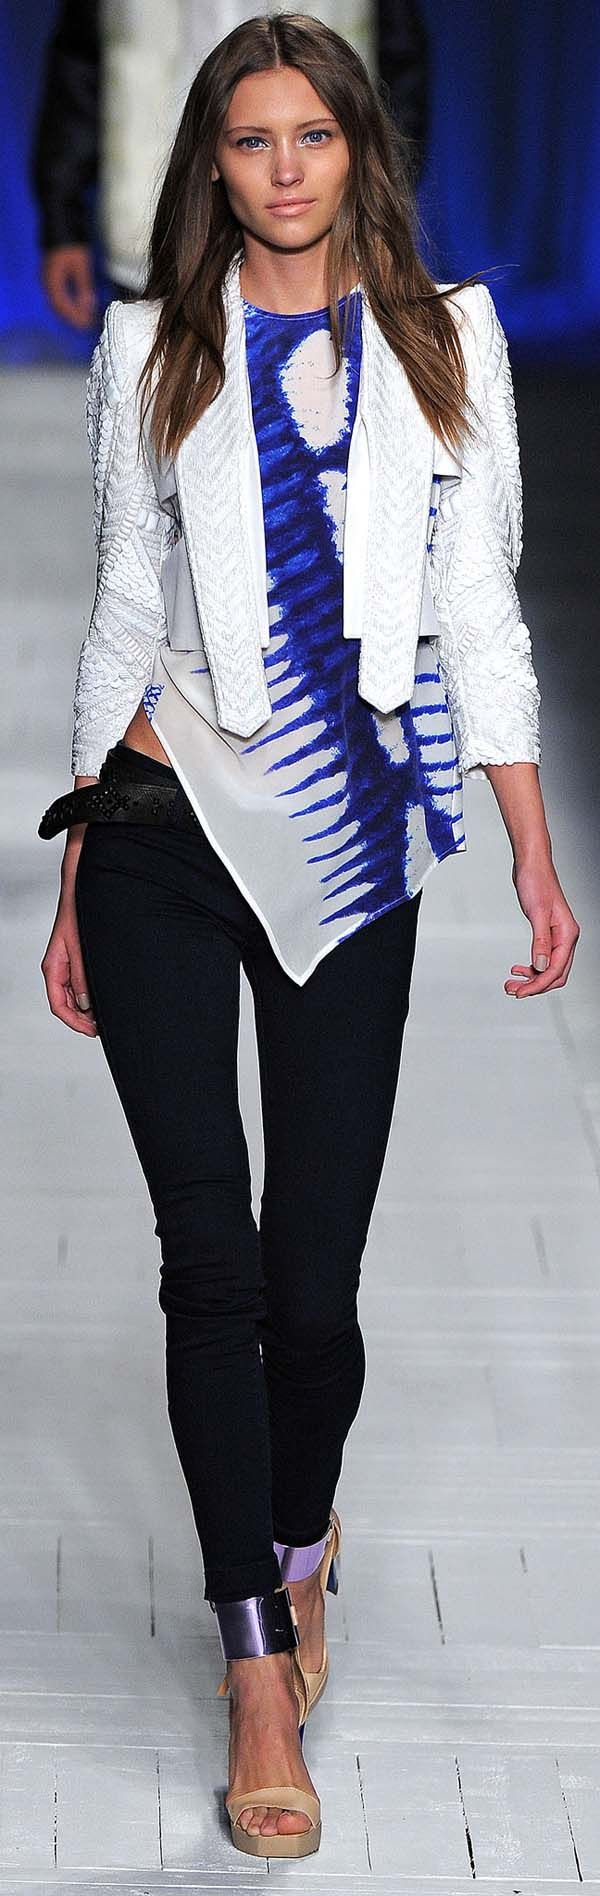 best runway images on pinterest high fashion fashion show and